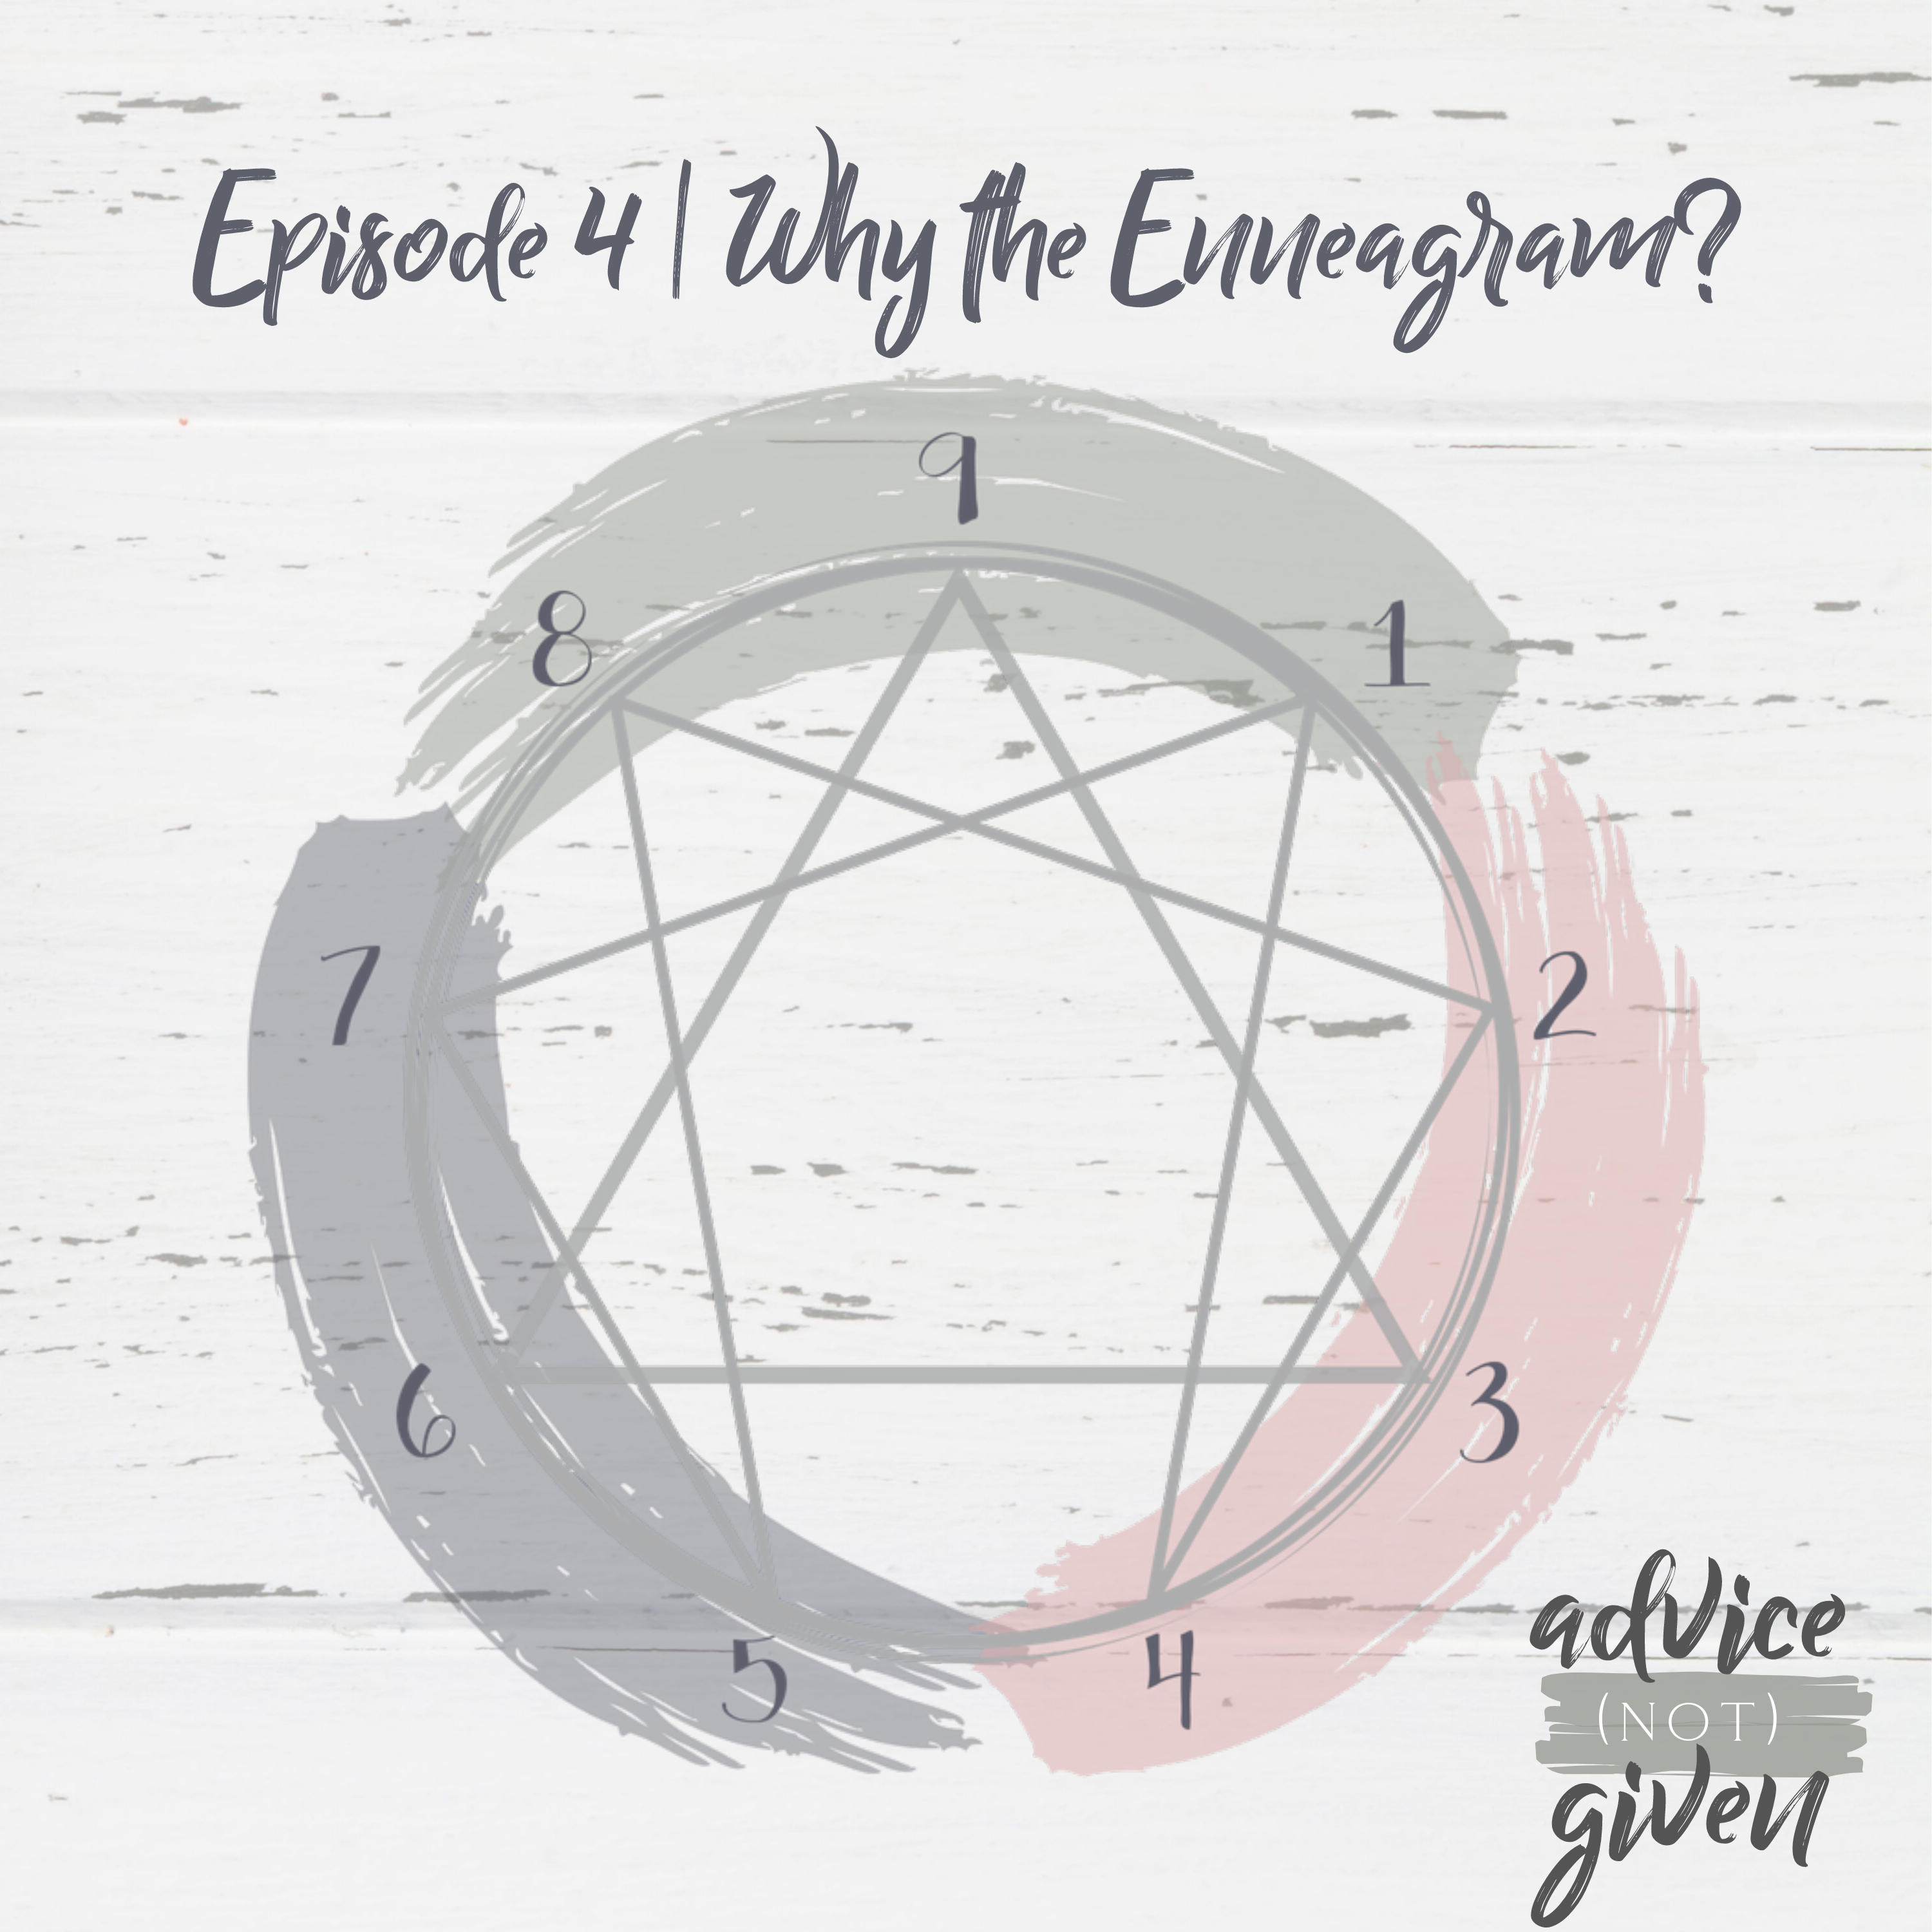 Episode 4 | Why the Enneagram? show art